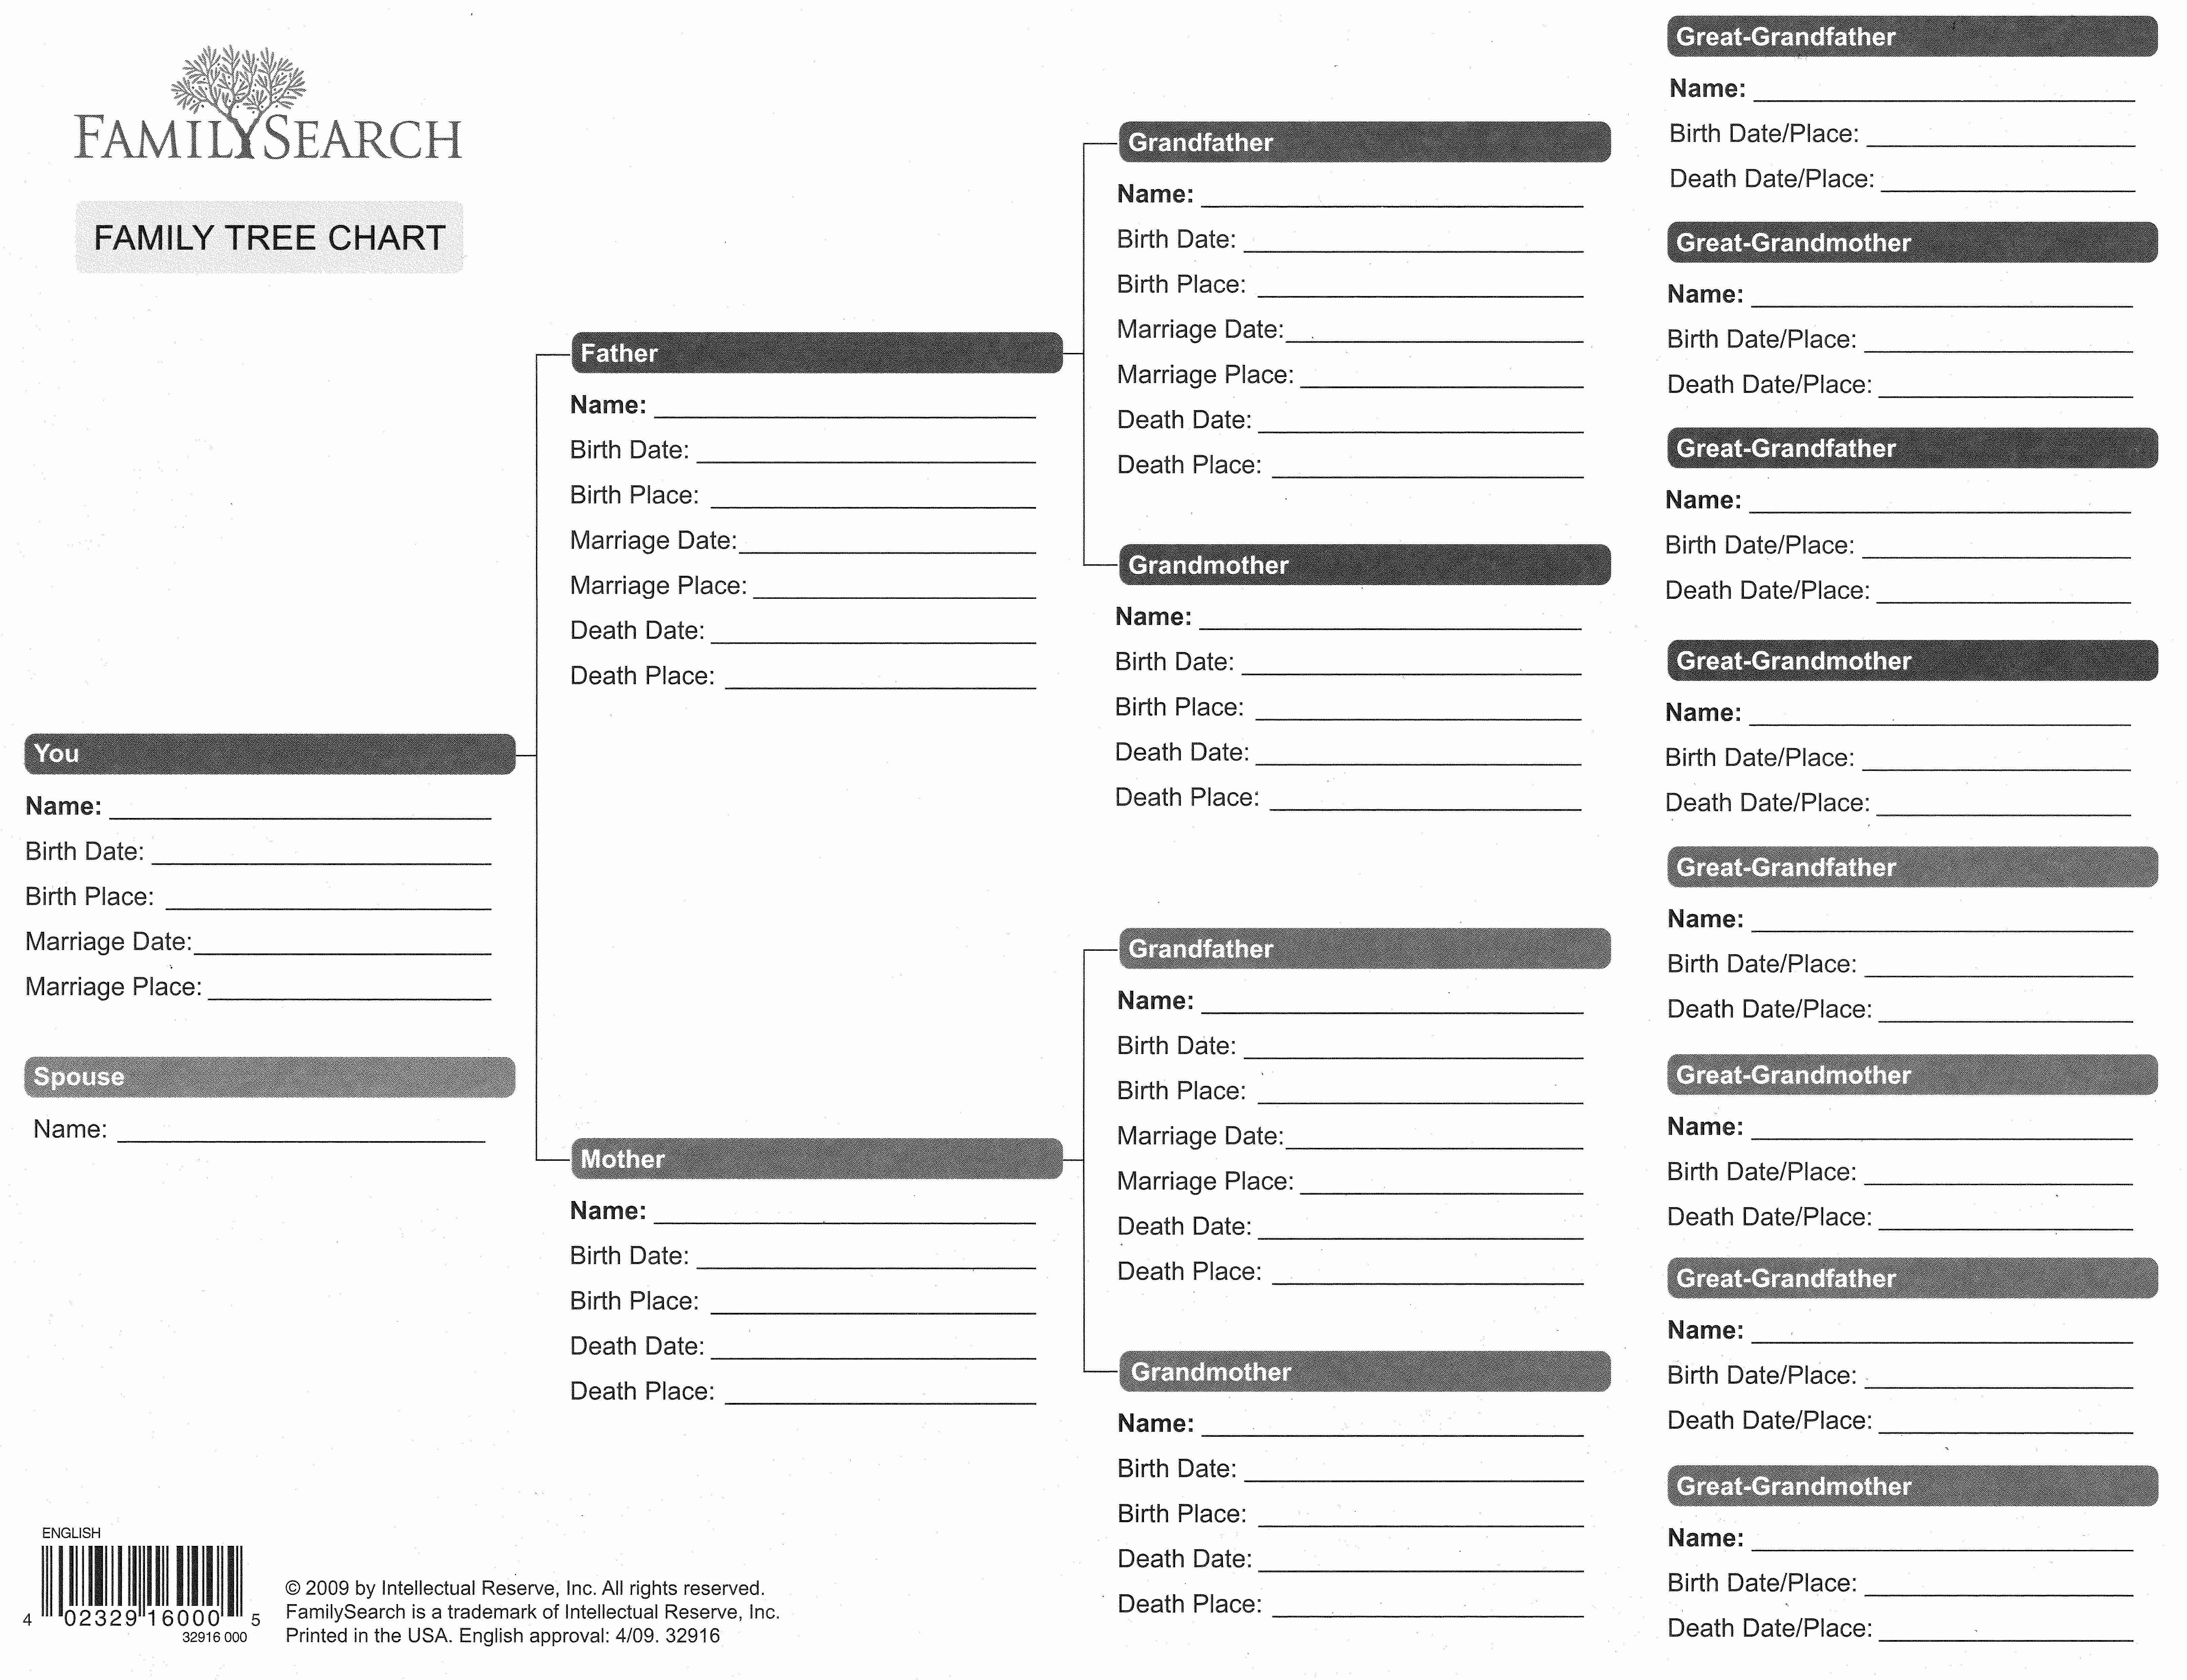 Templates For Family Tree Charts Beautiful Ancestry Forms Free - Free Printable Family History Forms